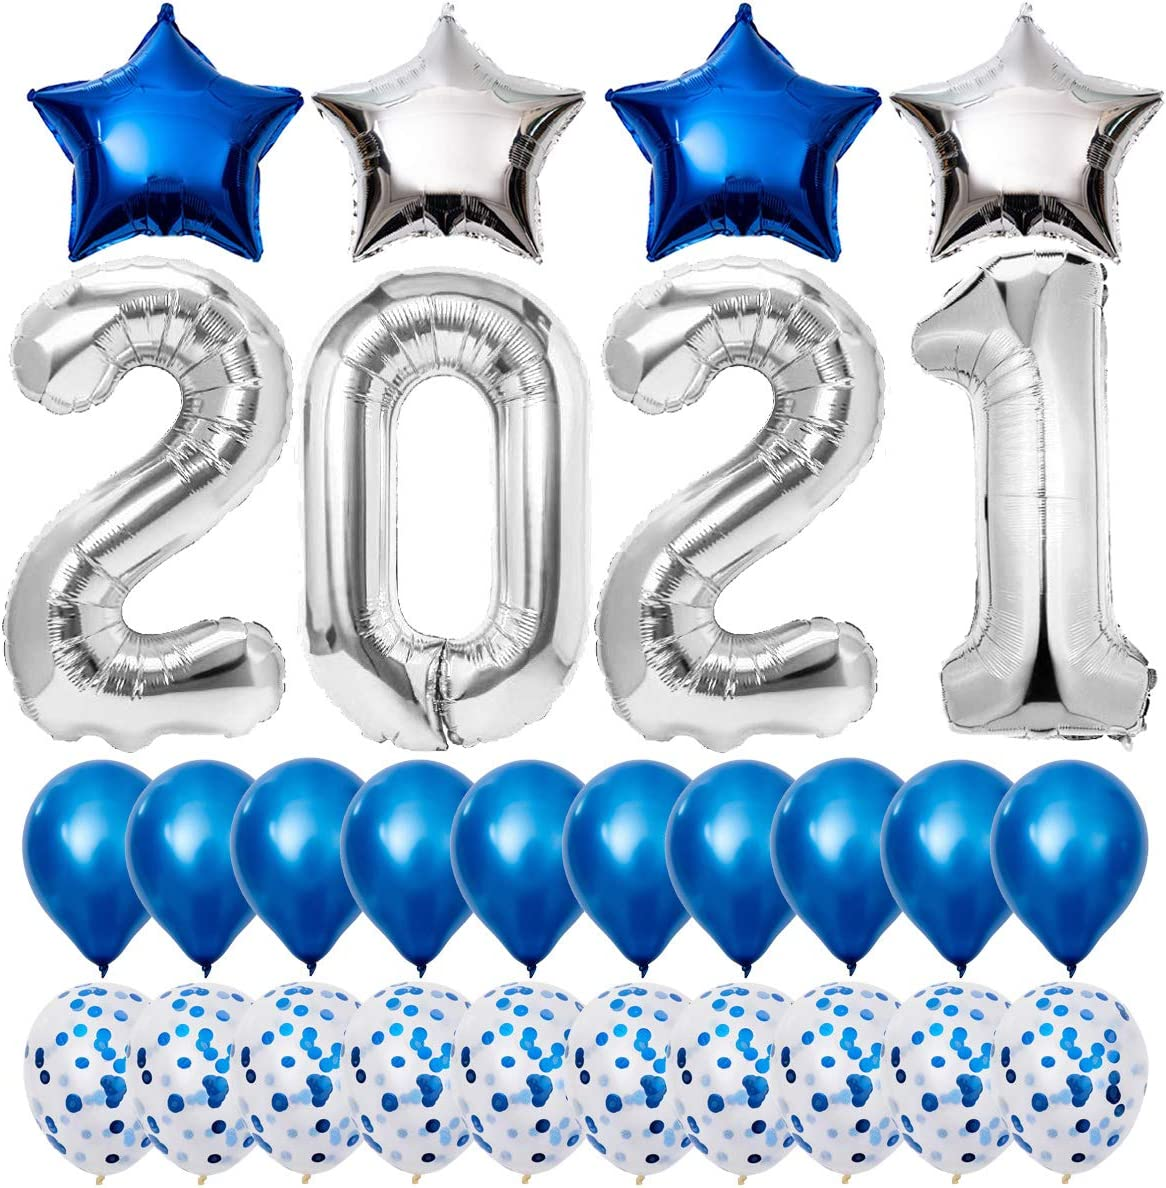 2021 Balloons Graduation Decorations, Graduation Party Supplies 2021, 40 Inch Silver 2021 Balloons with 4 Star Mylar Foil and 20 Latex Balloon, New Years Eve Party Supplies - Blue and White